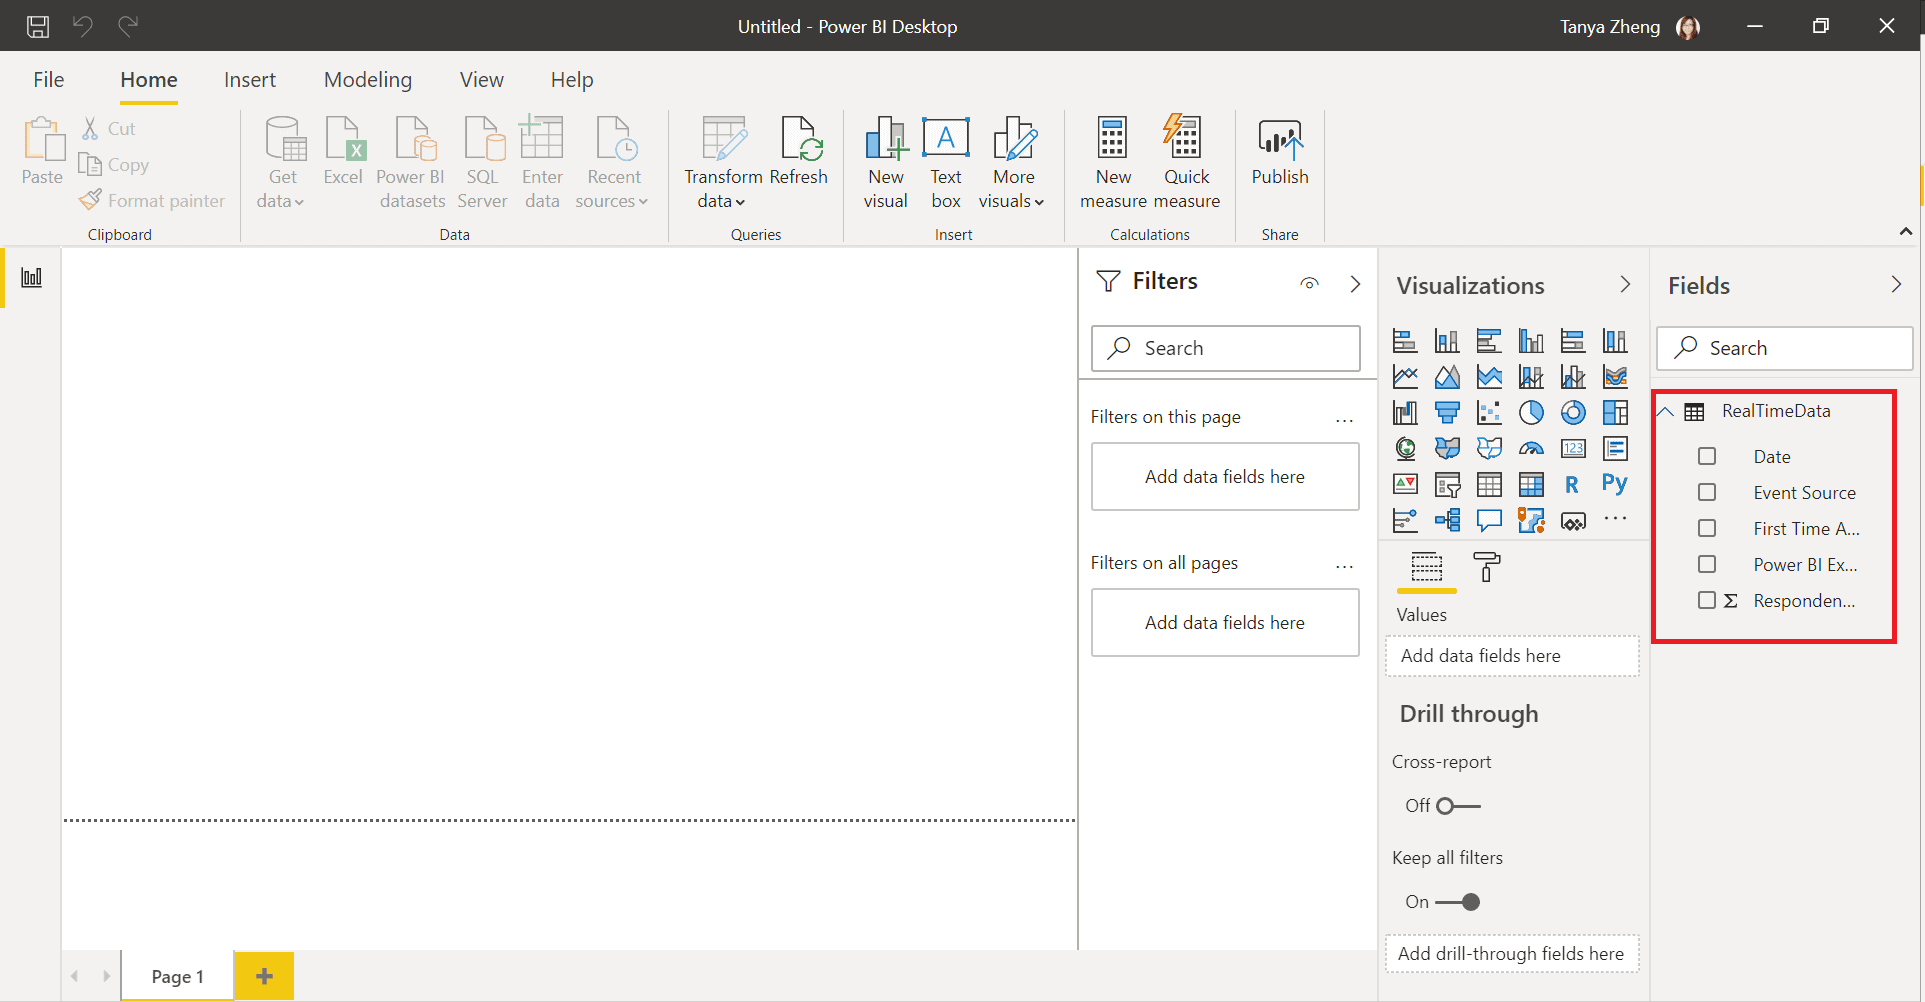 power bi desktop view, highlighting the table menu on the right